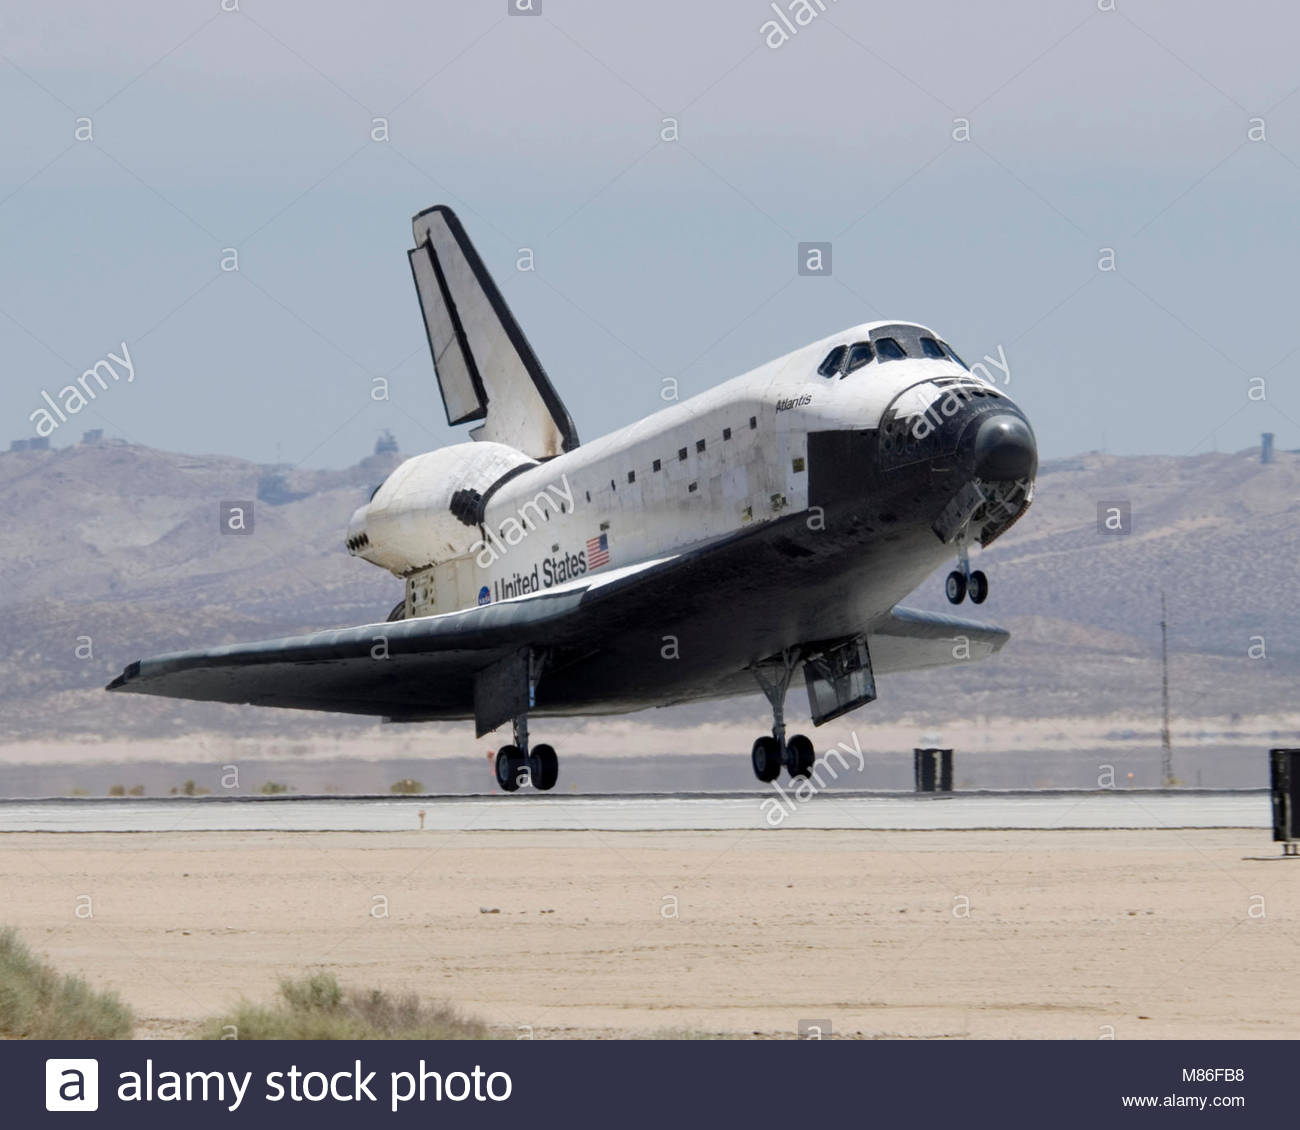 Space Shuttle Atlantis and the STS-117 crew returns home. Space Shuttle Atlantis and the STS-117 crew returned home - Stock Image